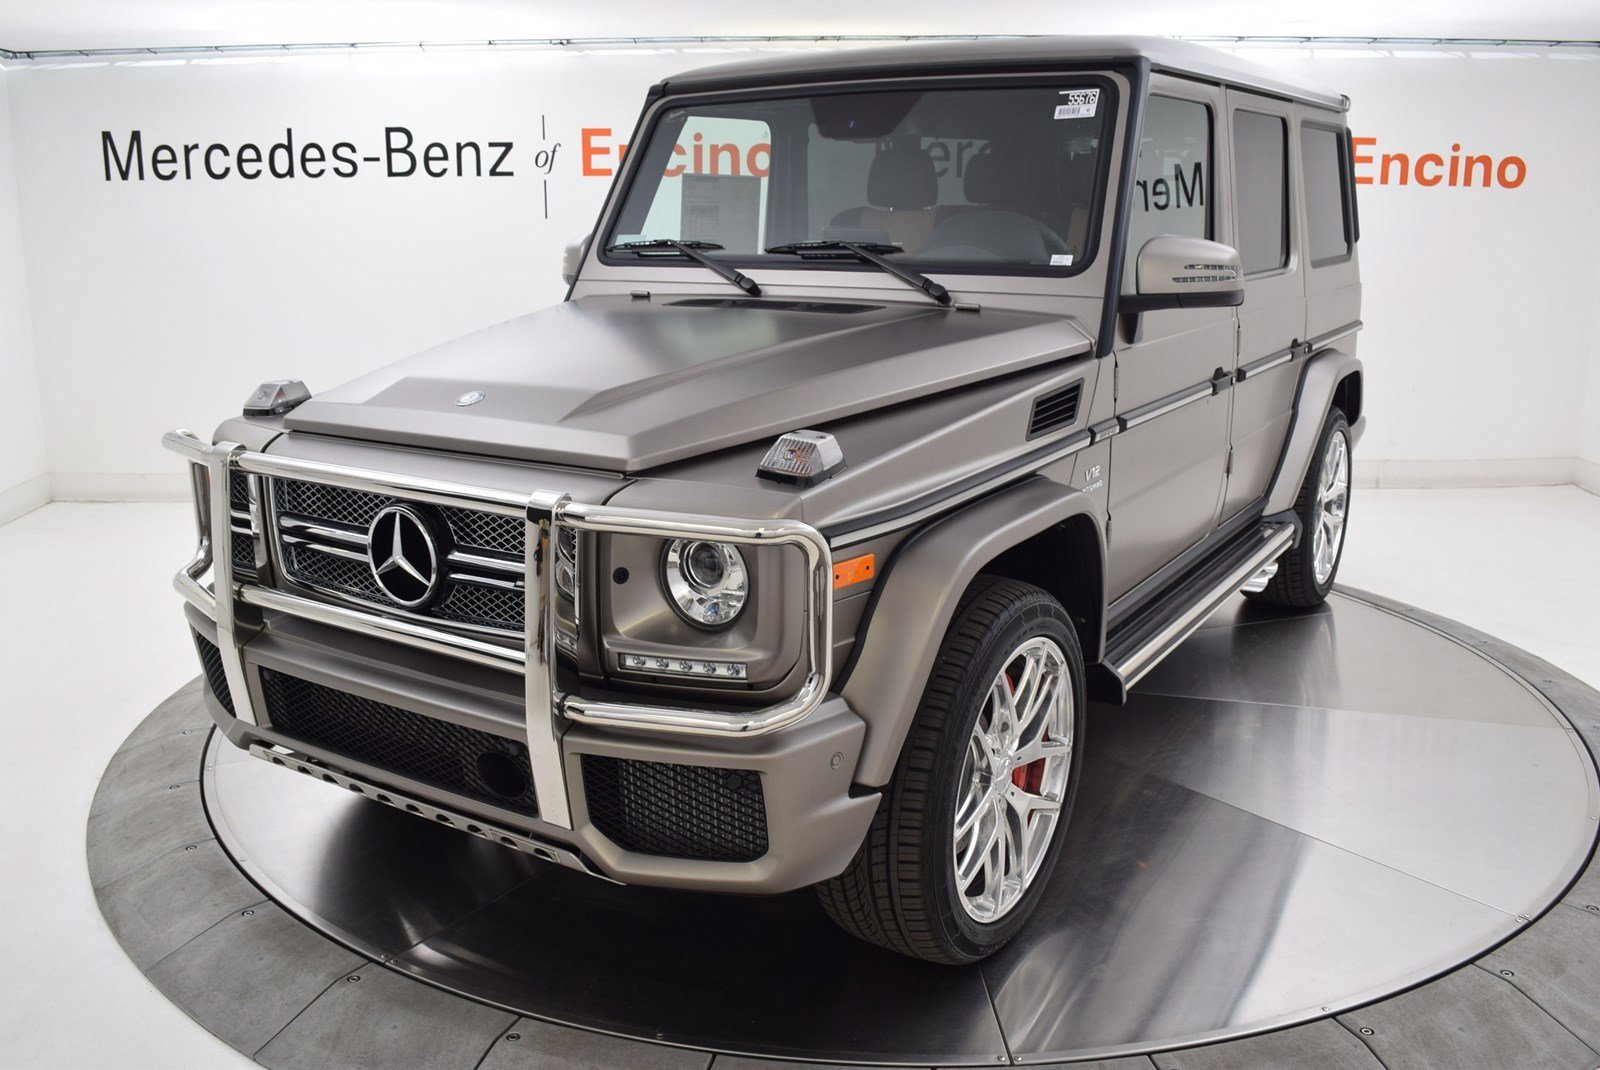 New 2017 mercedes benz g class g 65 amg suv suv in encino for Mercedes benz g class amg